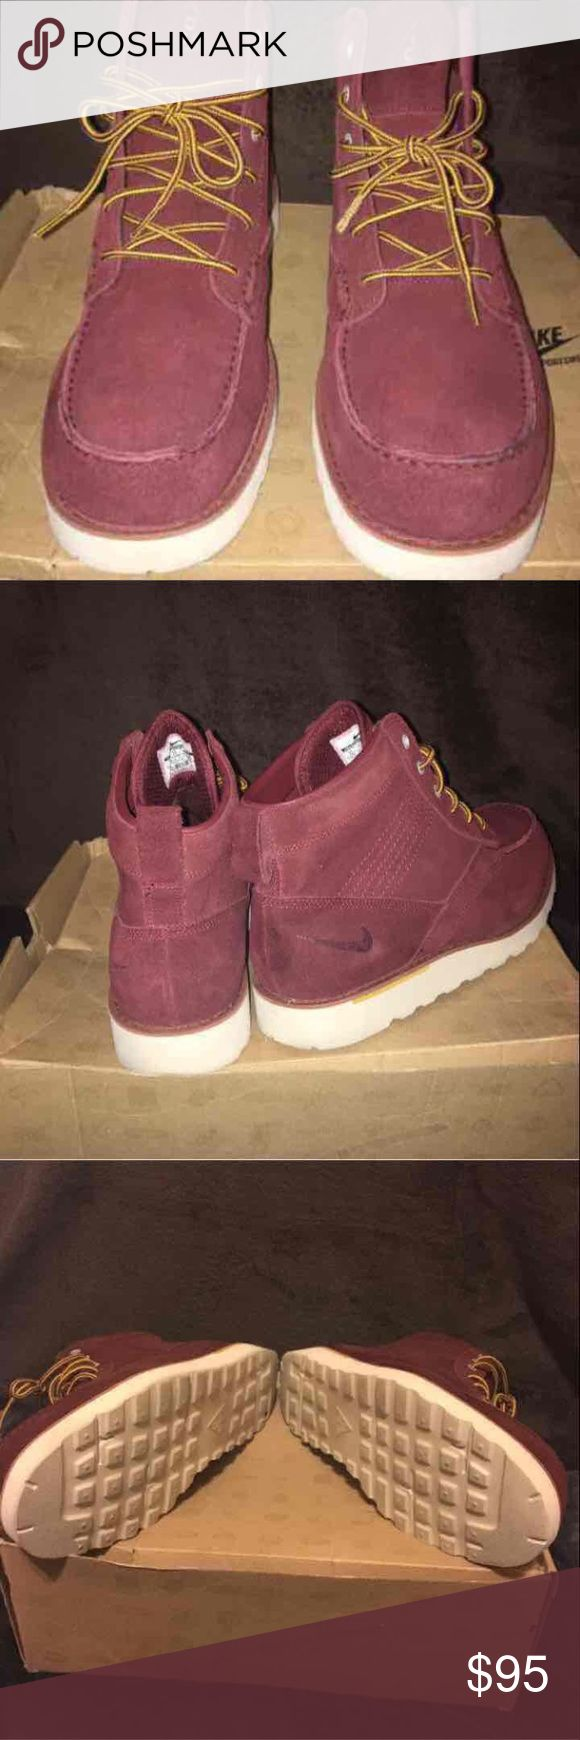 Nike Leather Kingmans 100% Authentic Worn once, burgundy  Shoe and sole are in perfect shape.  1 set of laces  Damage to original boxing, but will still be included with purchase.   SERIOUS BUYERS ONLY! I WILL HOLD FOR (ONE) DAY IF NEEDED Nike Shoes Boots